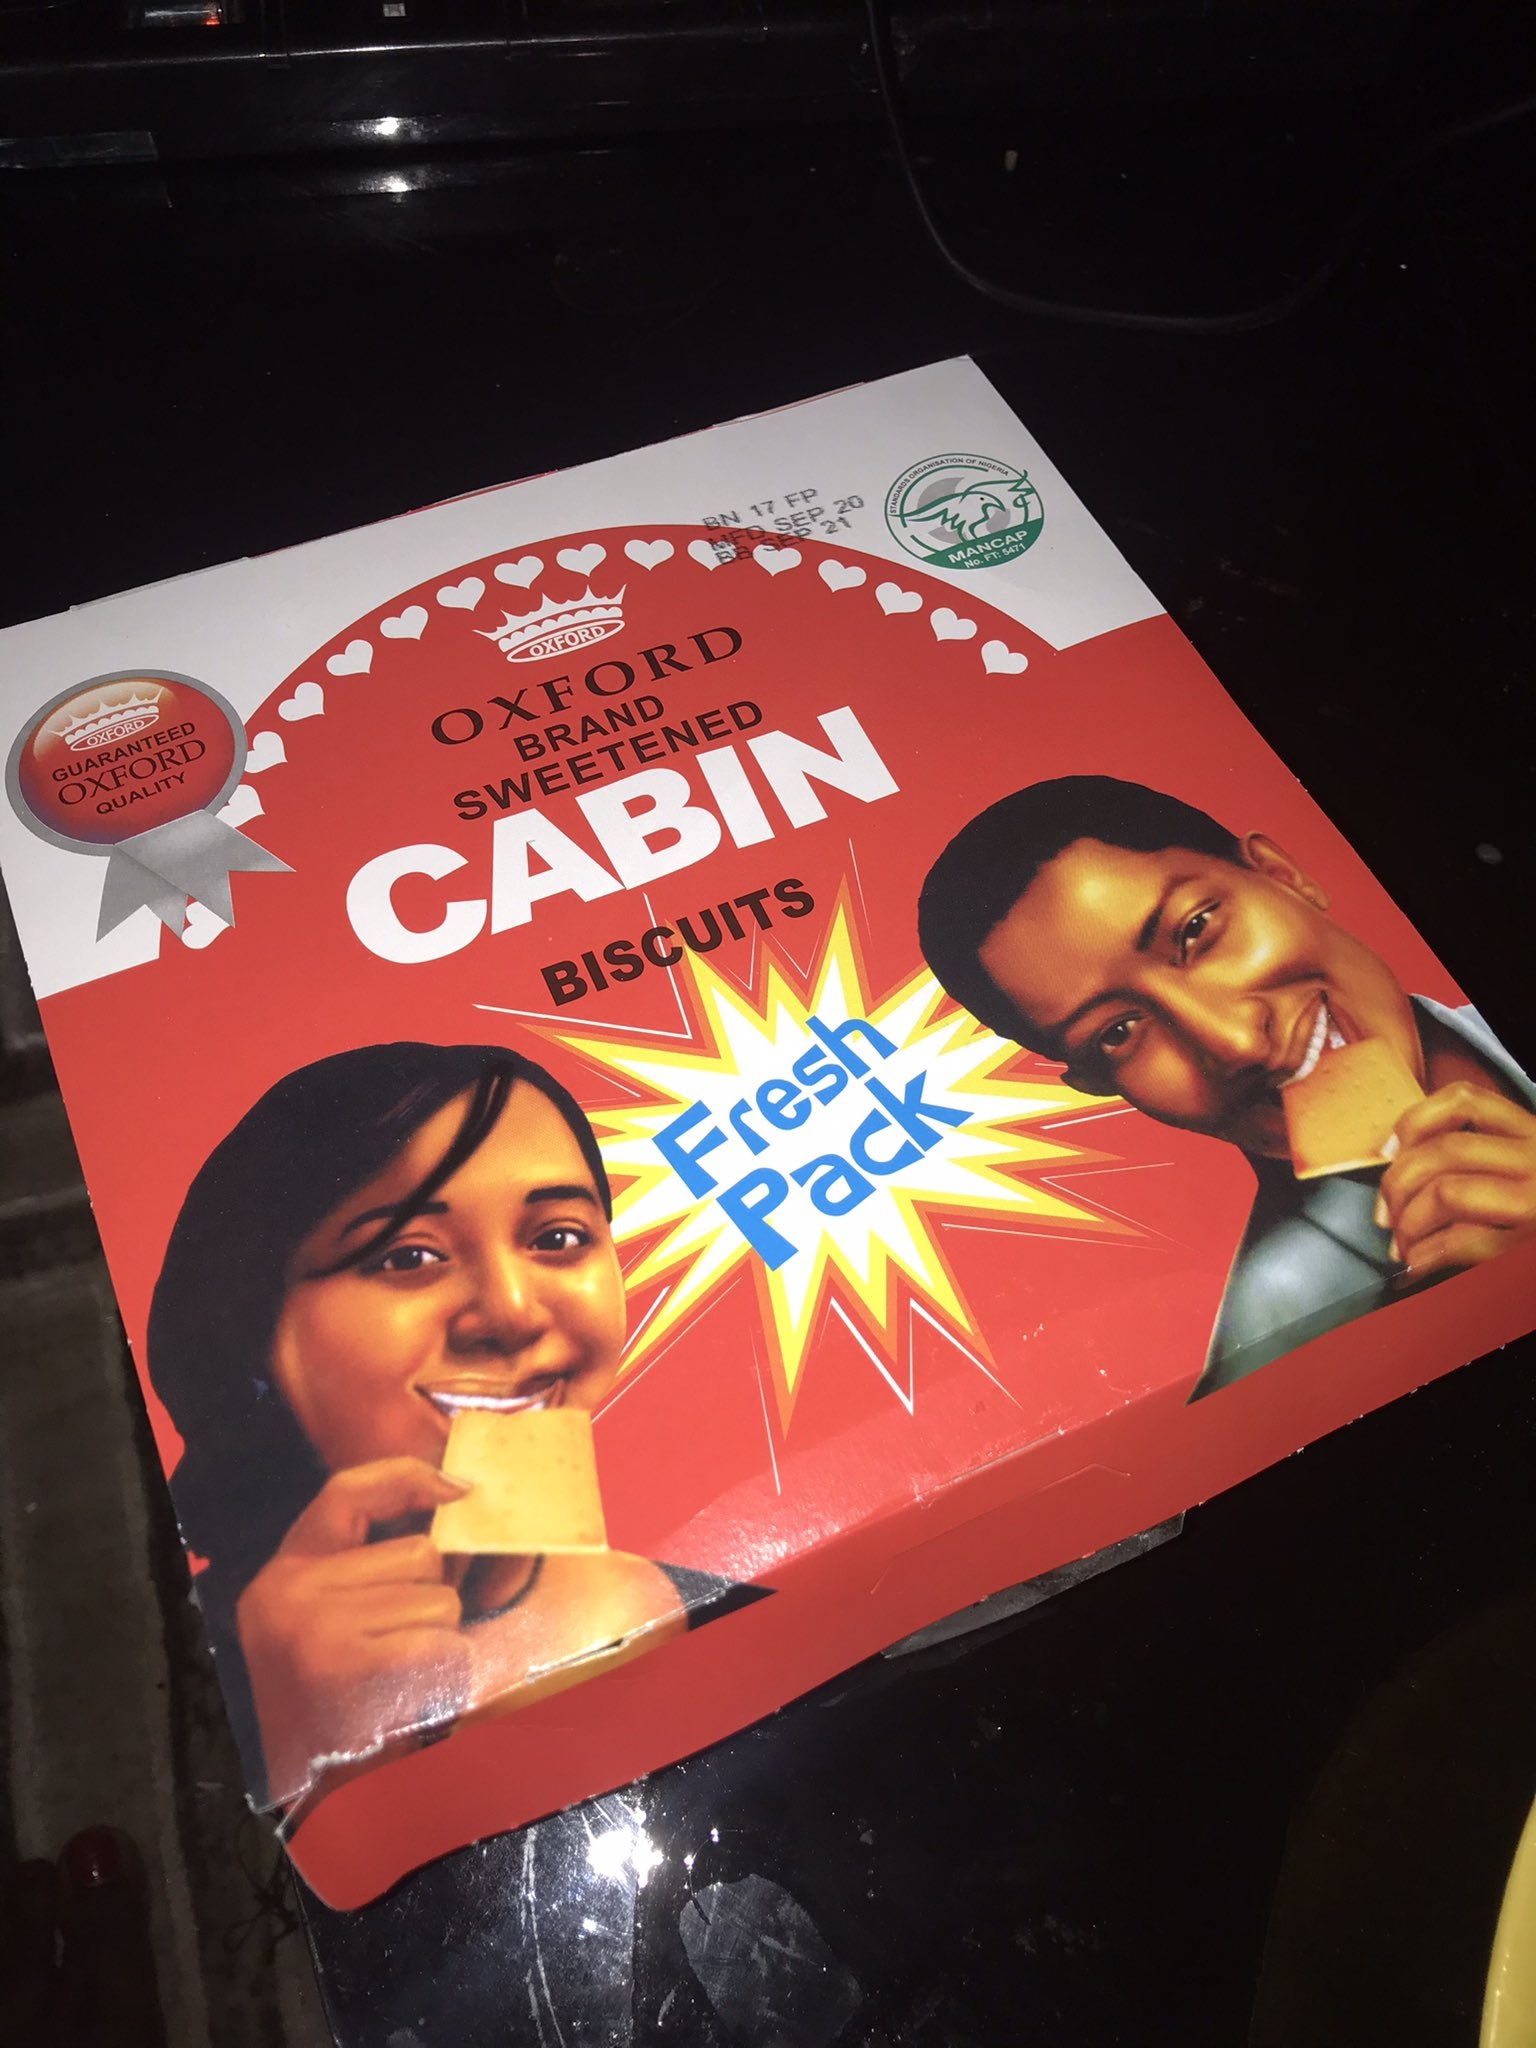 Oxford Cabin Biscuit - still a gem 60 years later